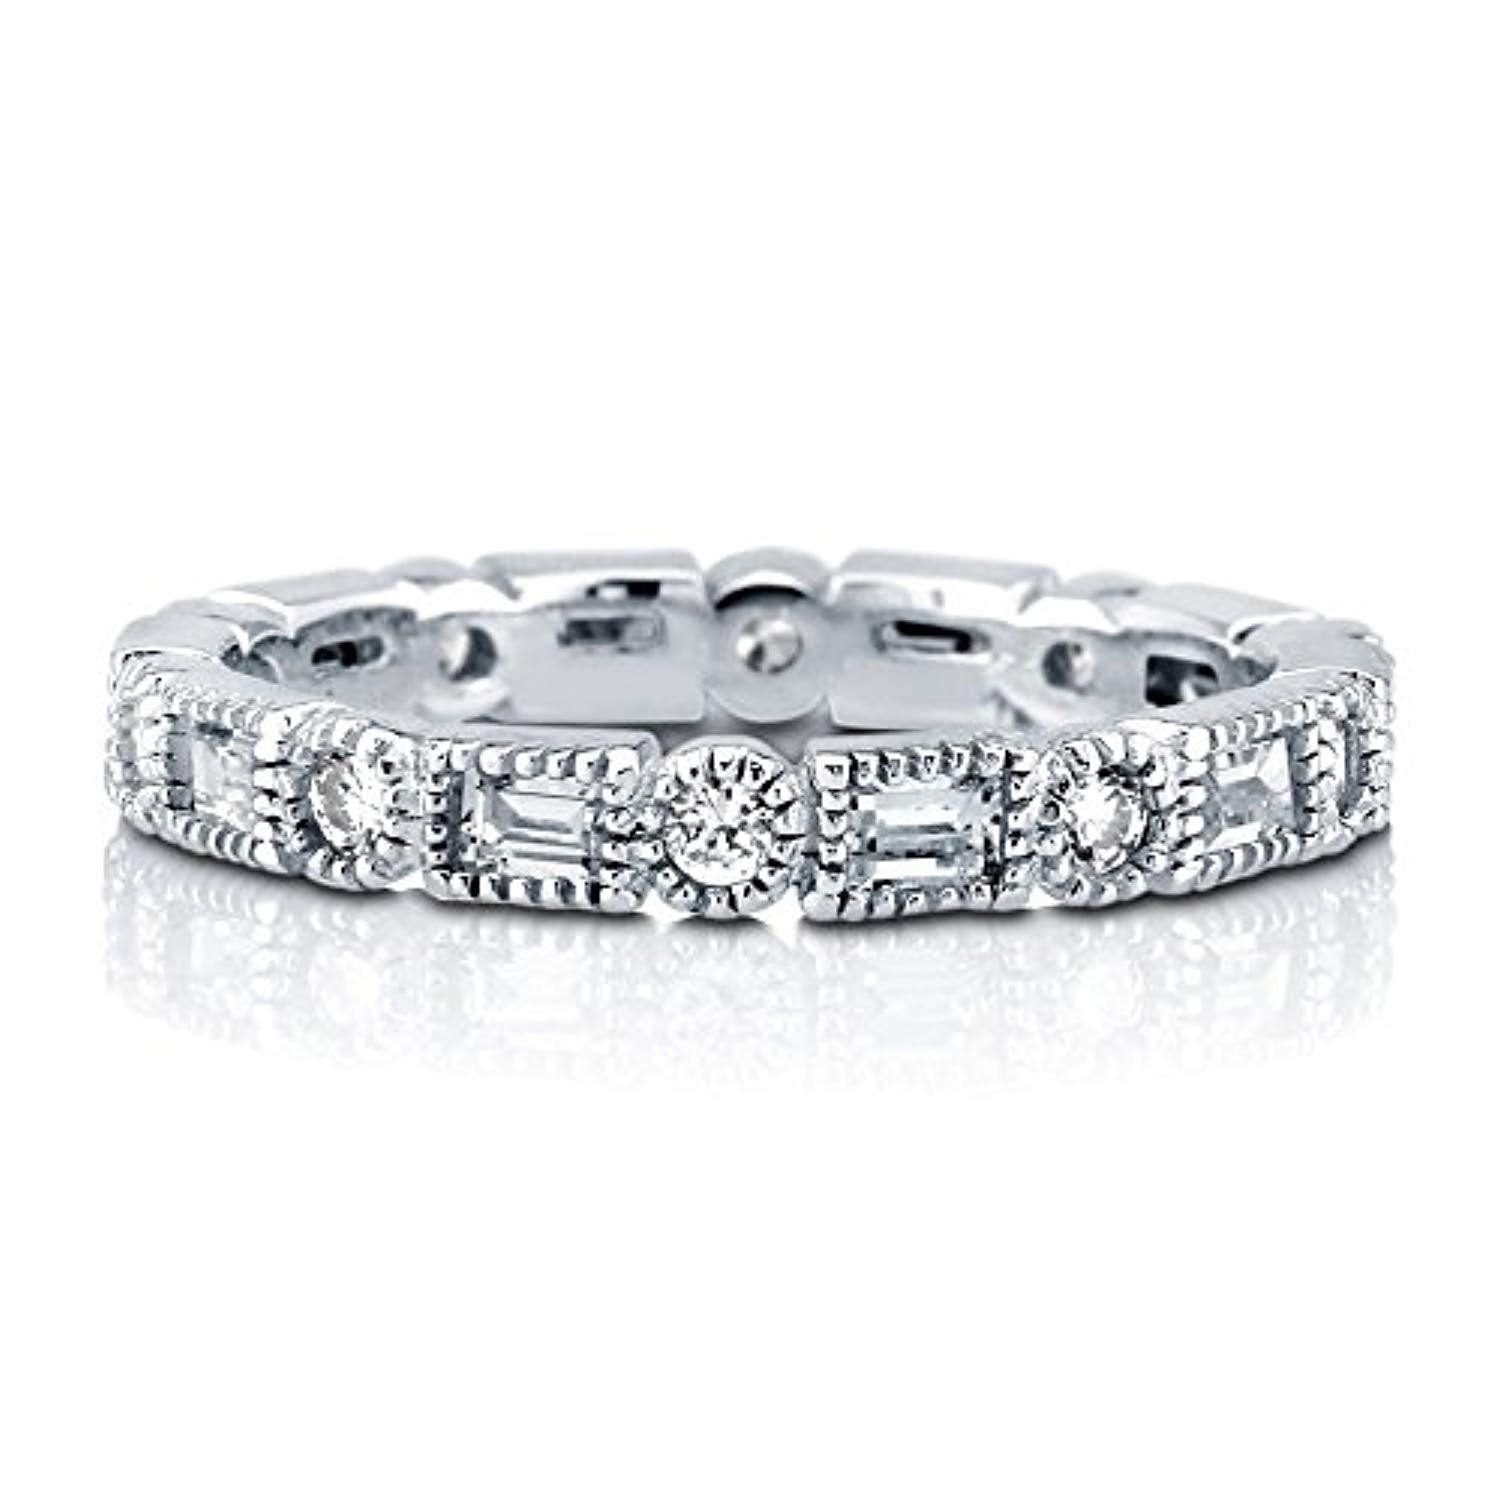 Rhodium Plated Sterling Silver Cubic Zirconia CZ Art Deco Anniversary Wedding Eternity Band Ring